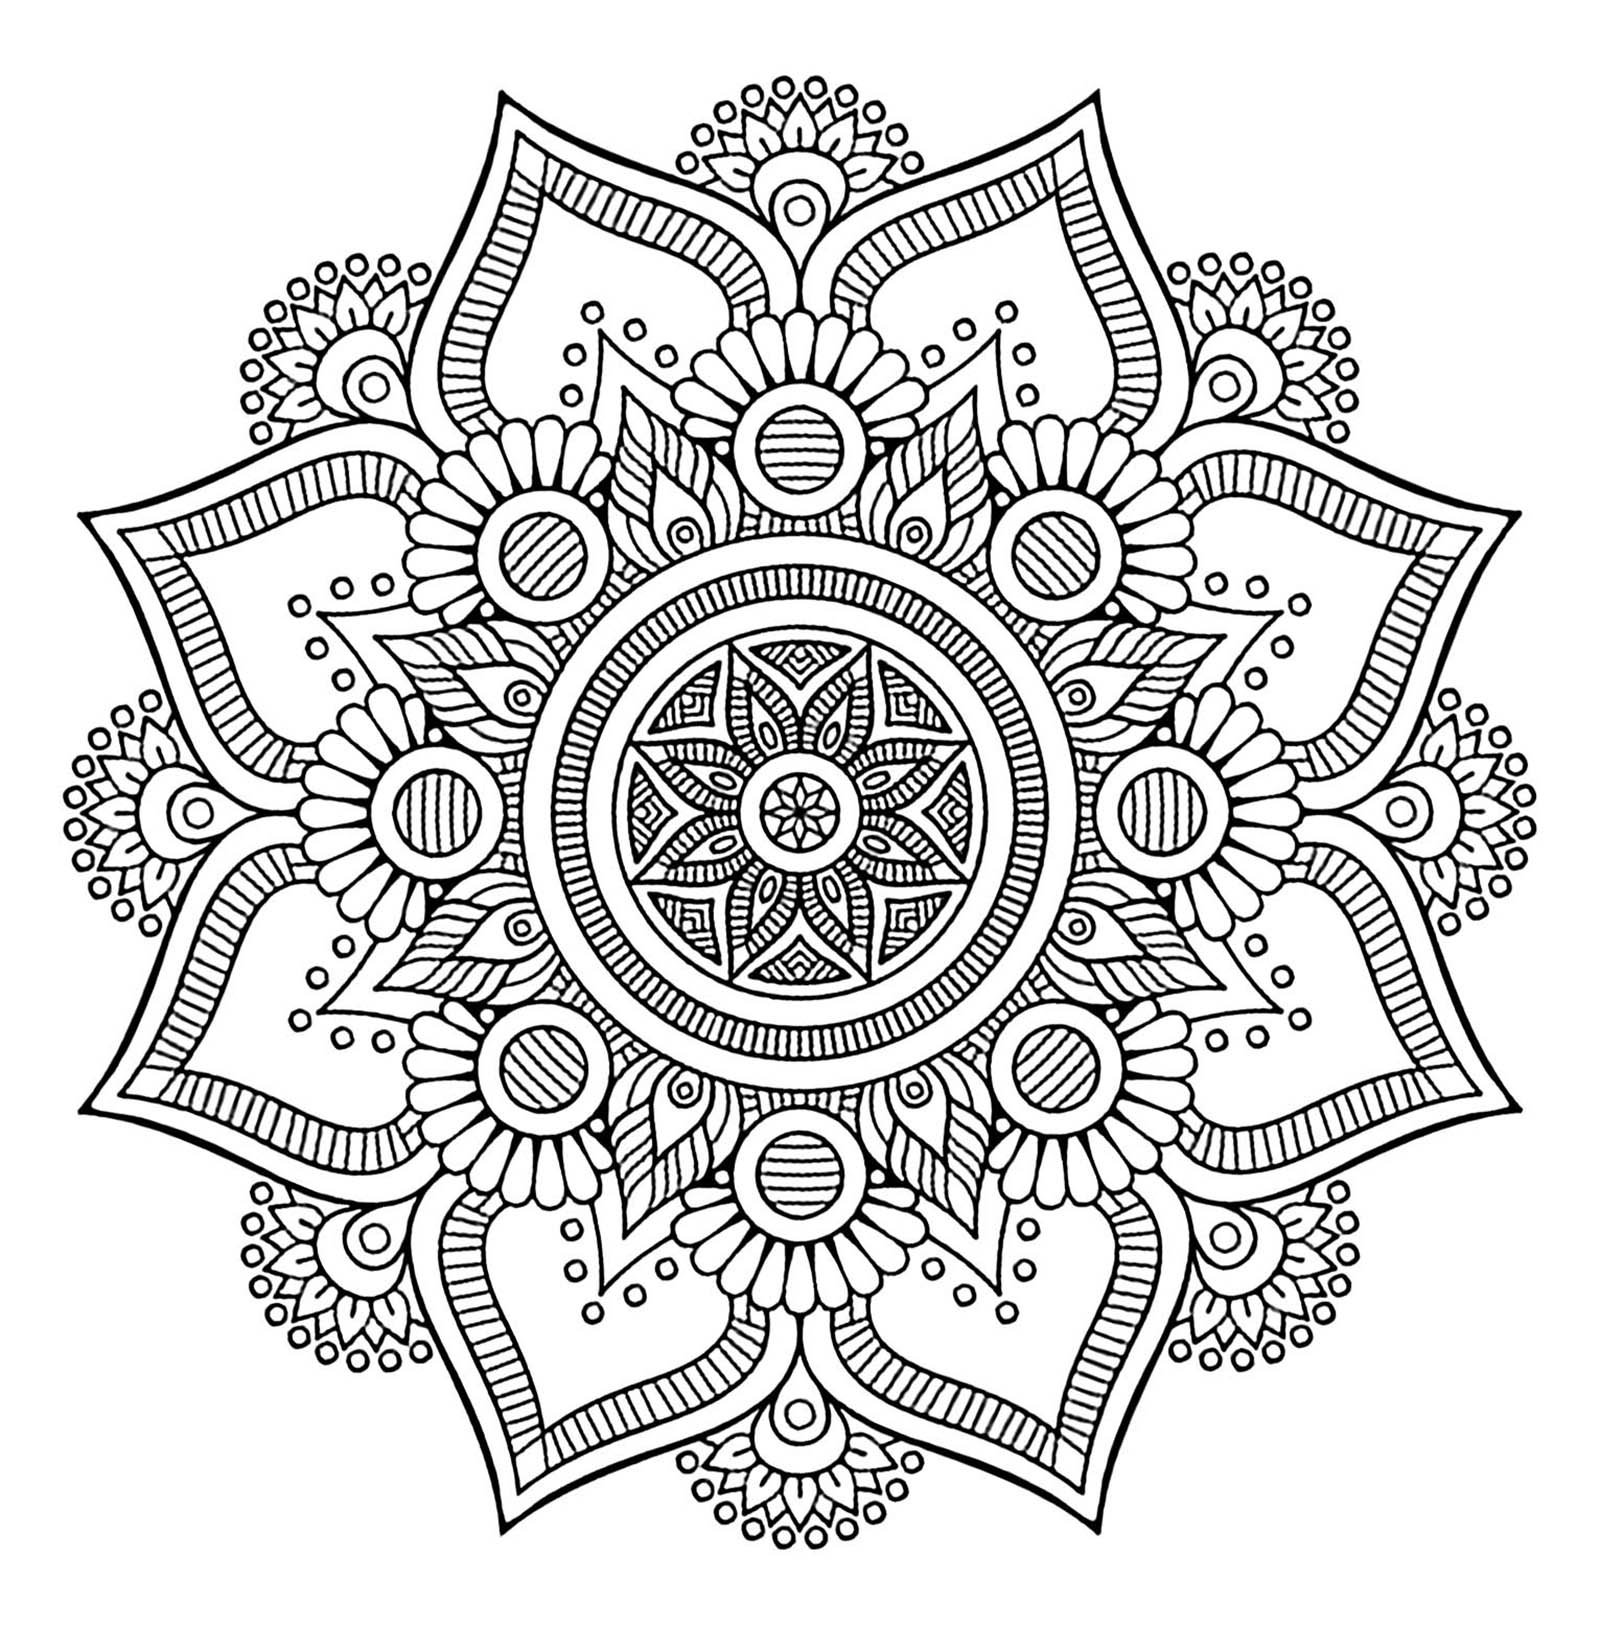 Cute free Mandalas coloring page to download